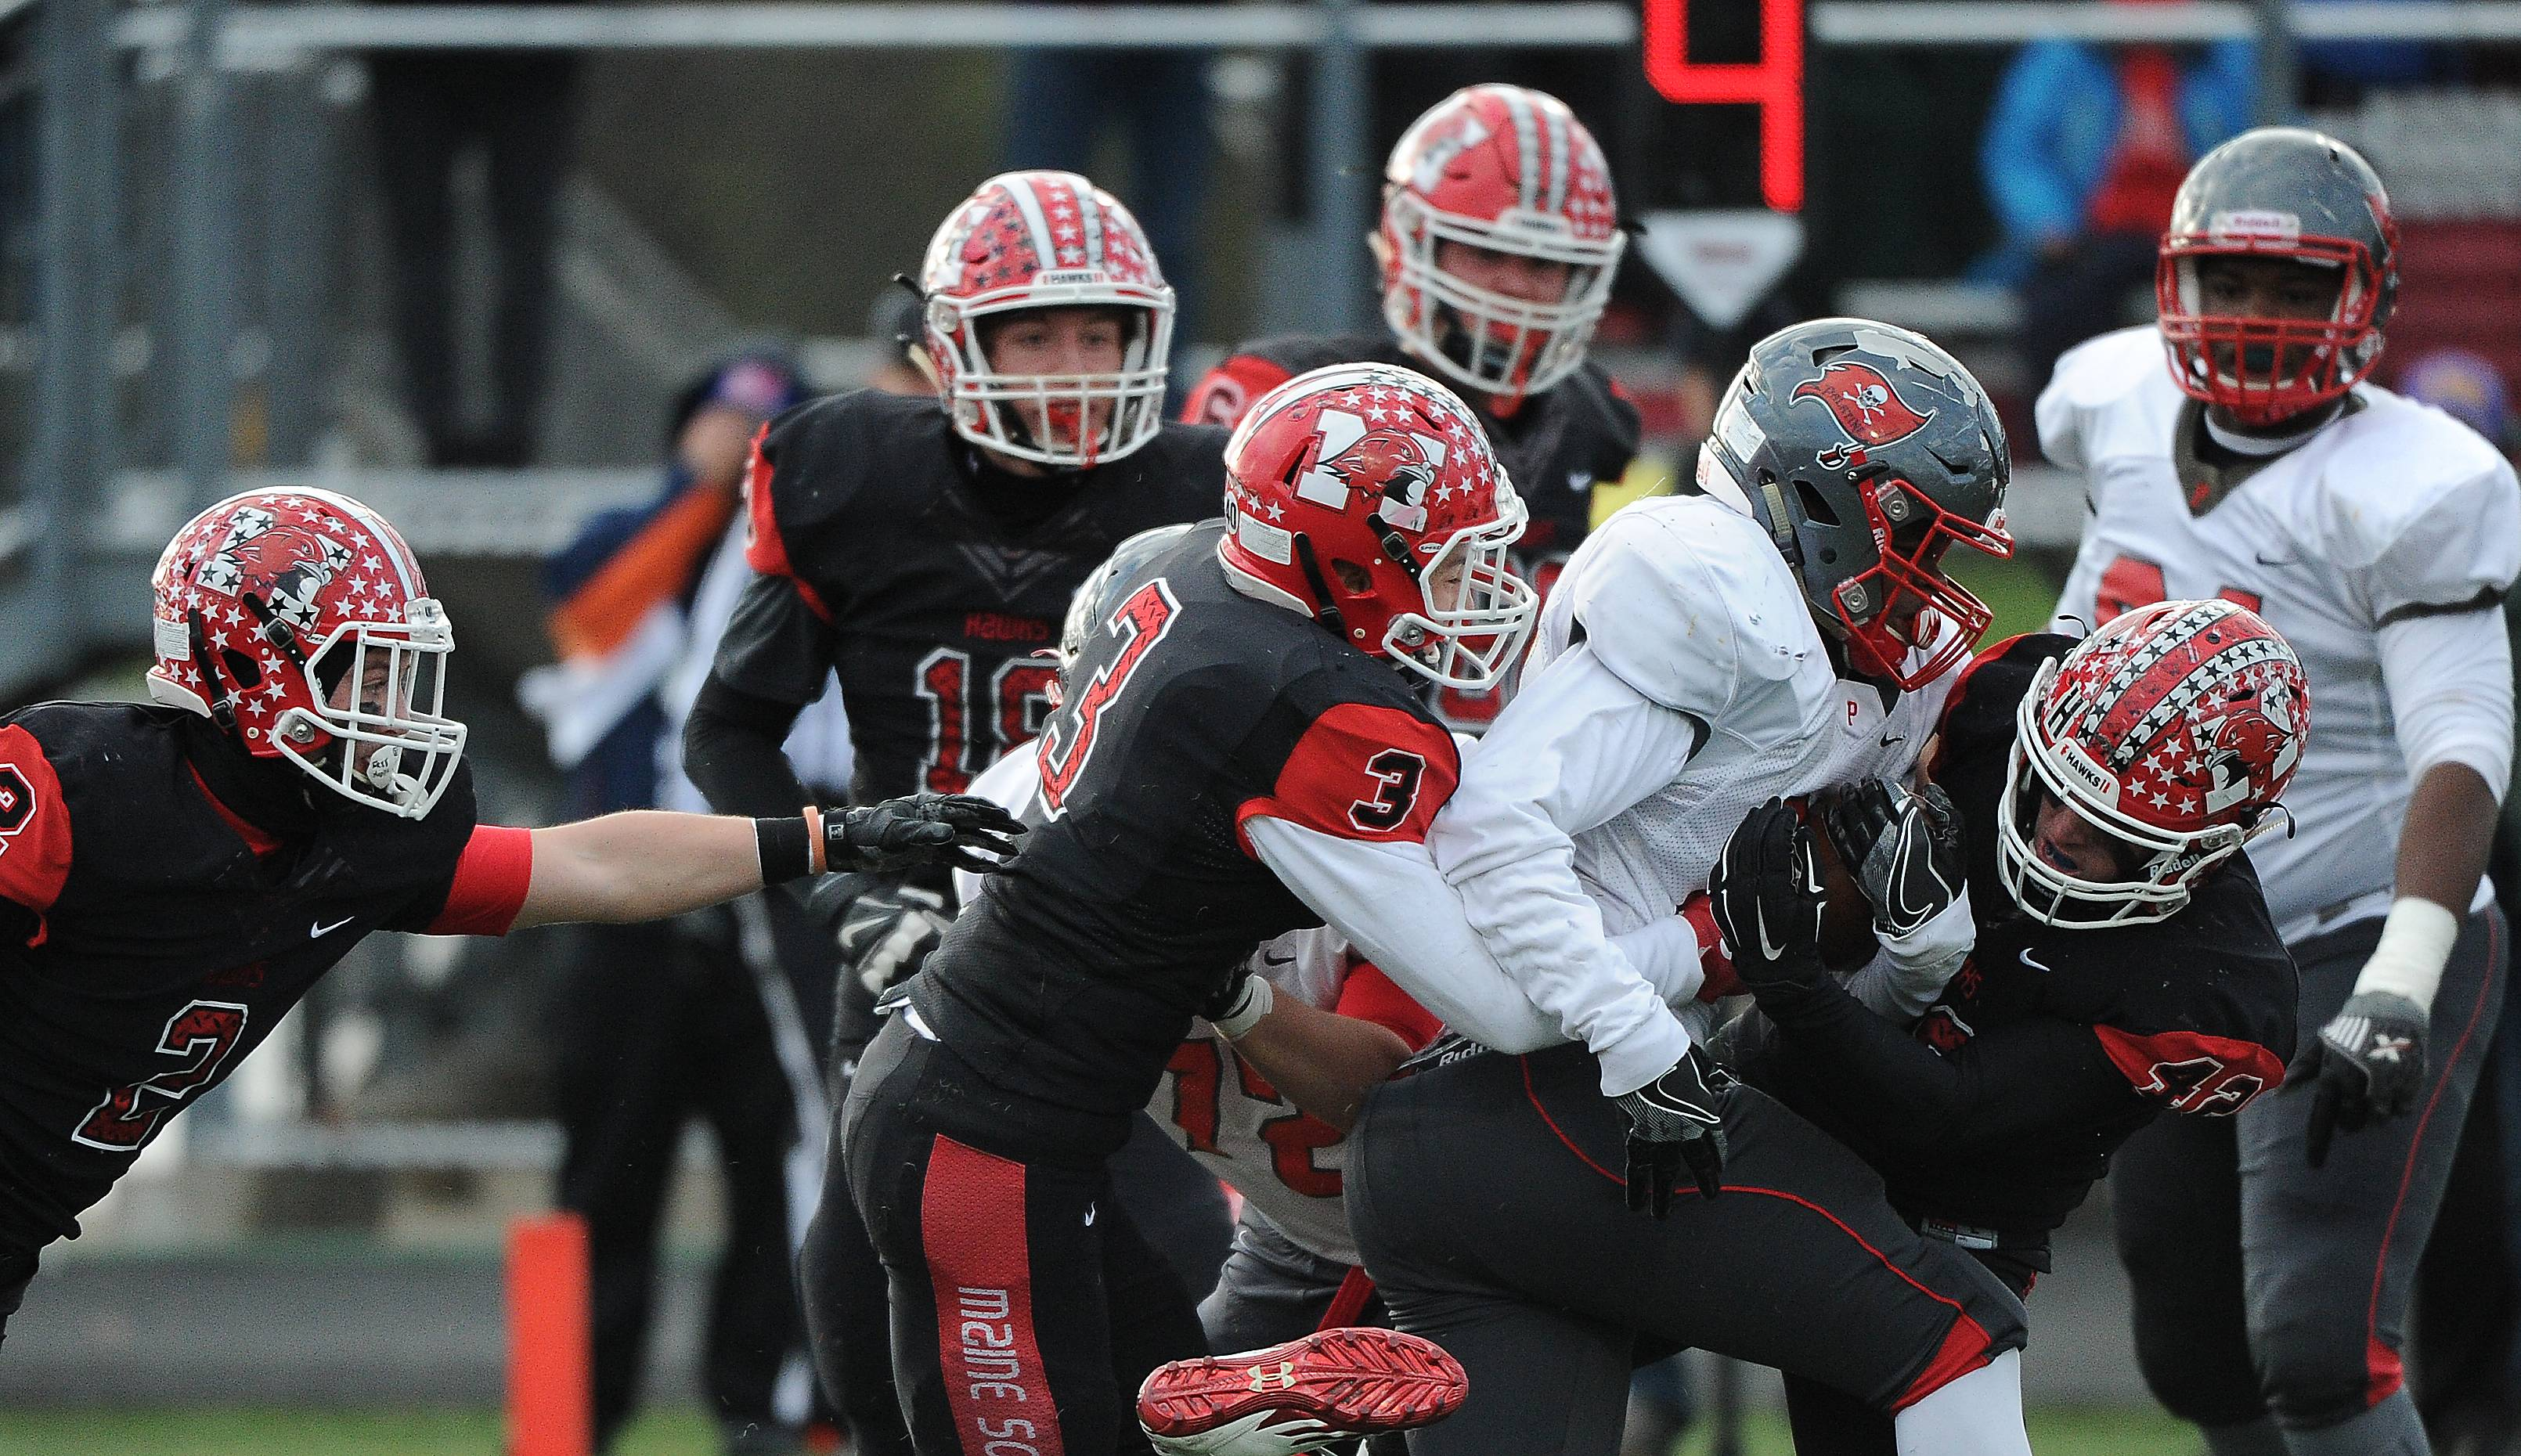 Palatine's Josh Turner is turned away from the end zone by a tough Maine South defense in the Class 8A state semifinals on Saturday.